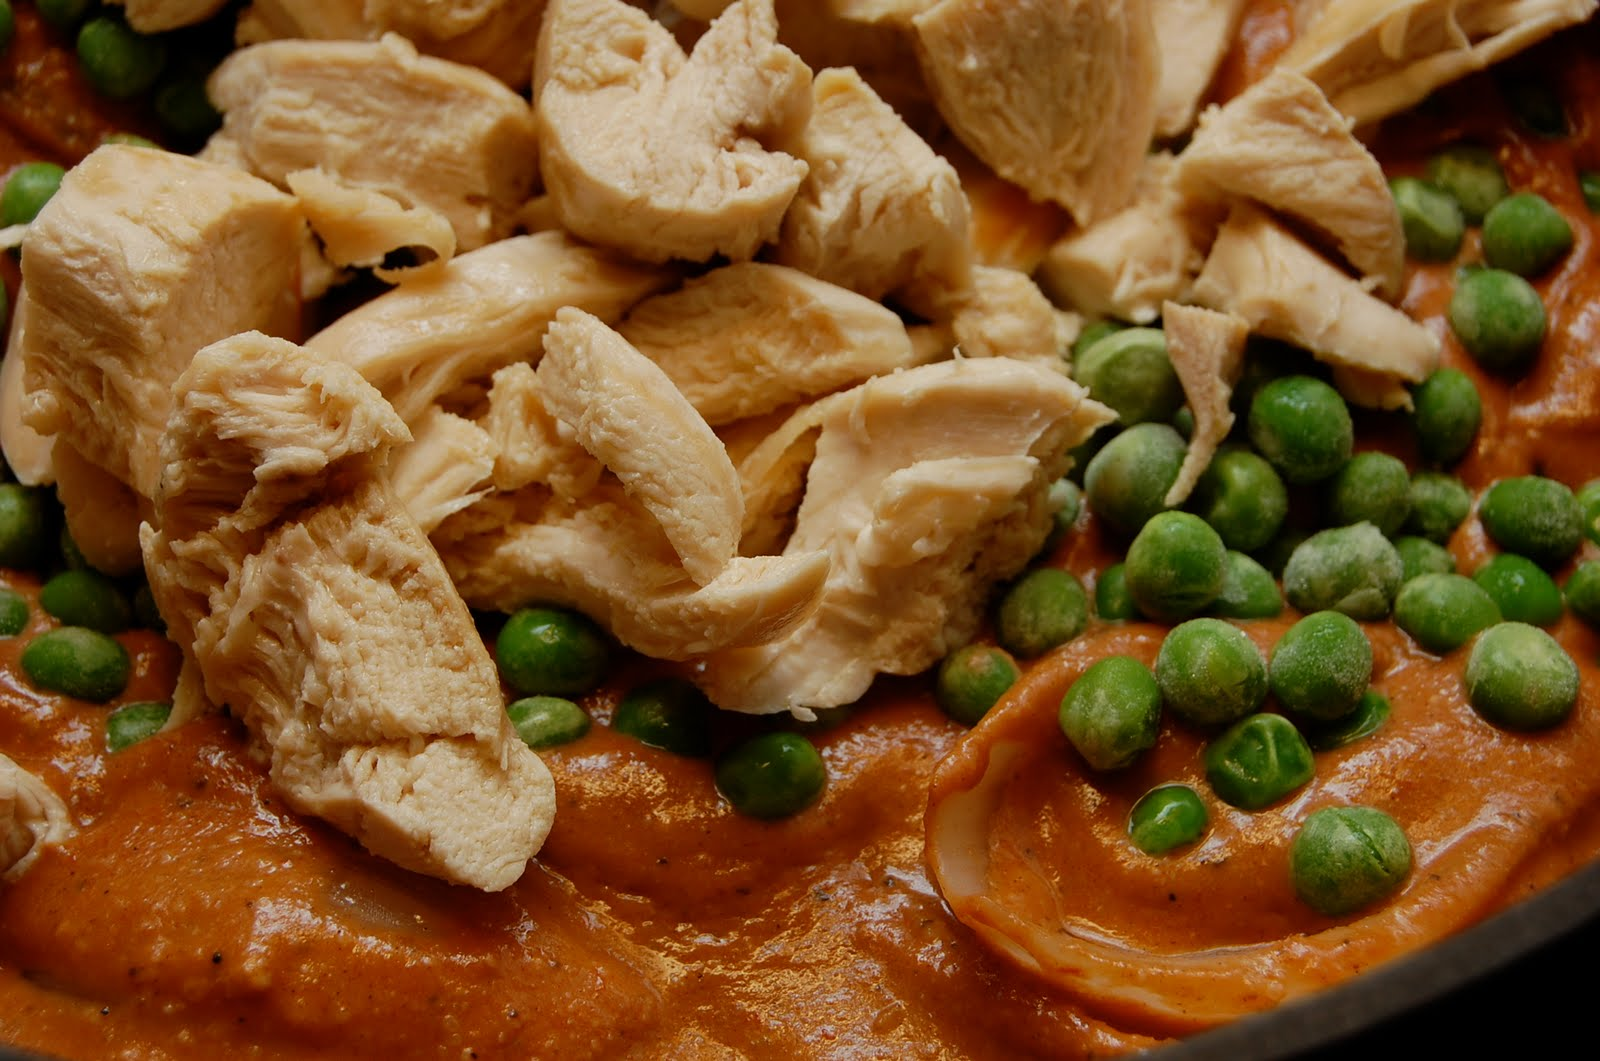 ... : Daring Cooks: Nut Butter & Chicken with Curried Tomato Almond Sauce